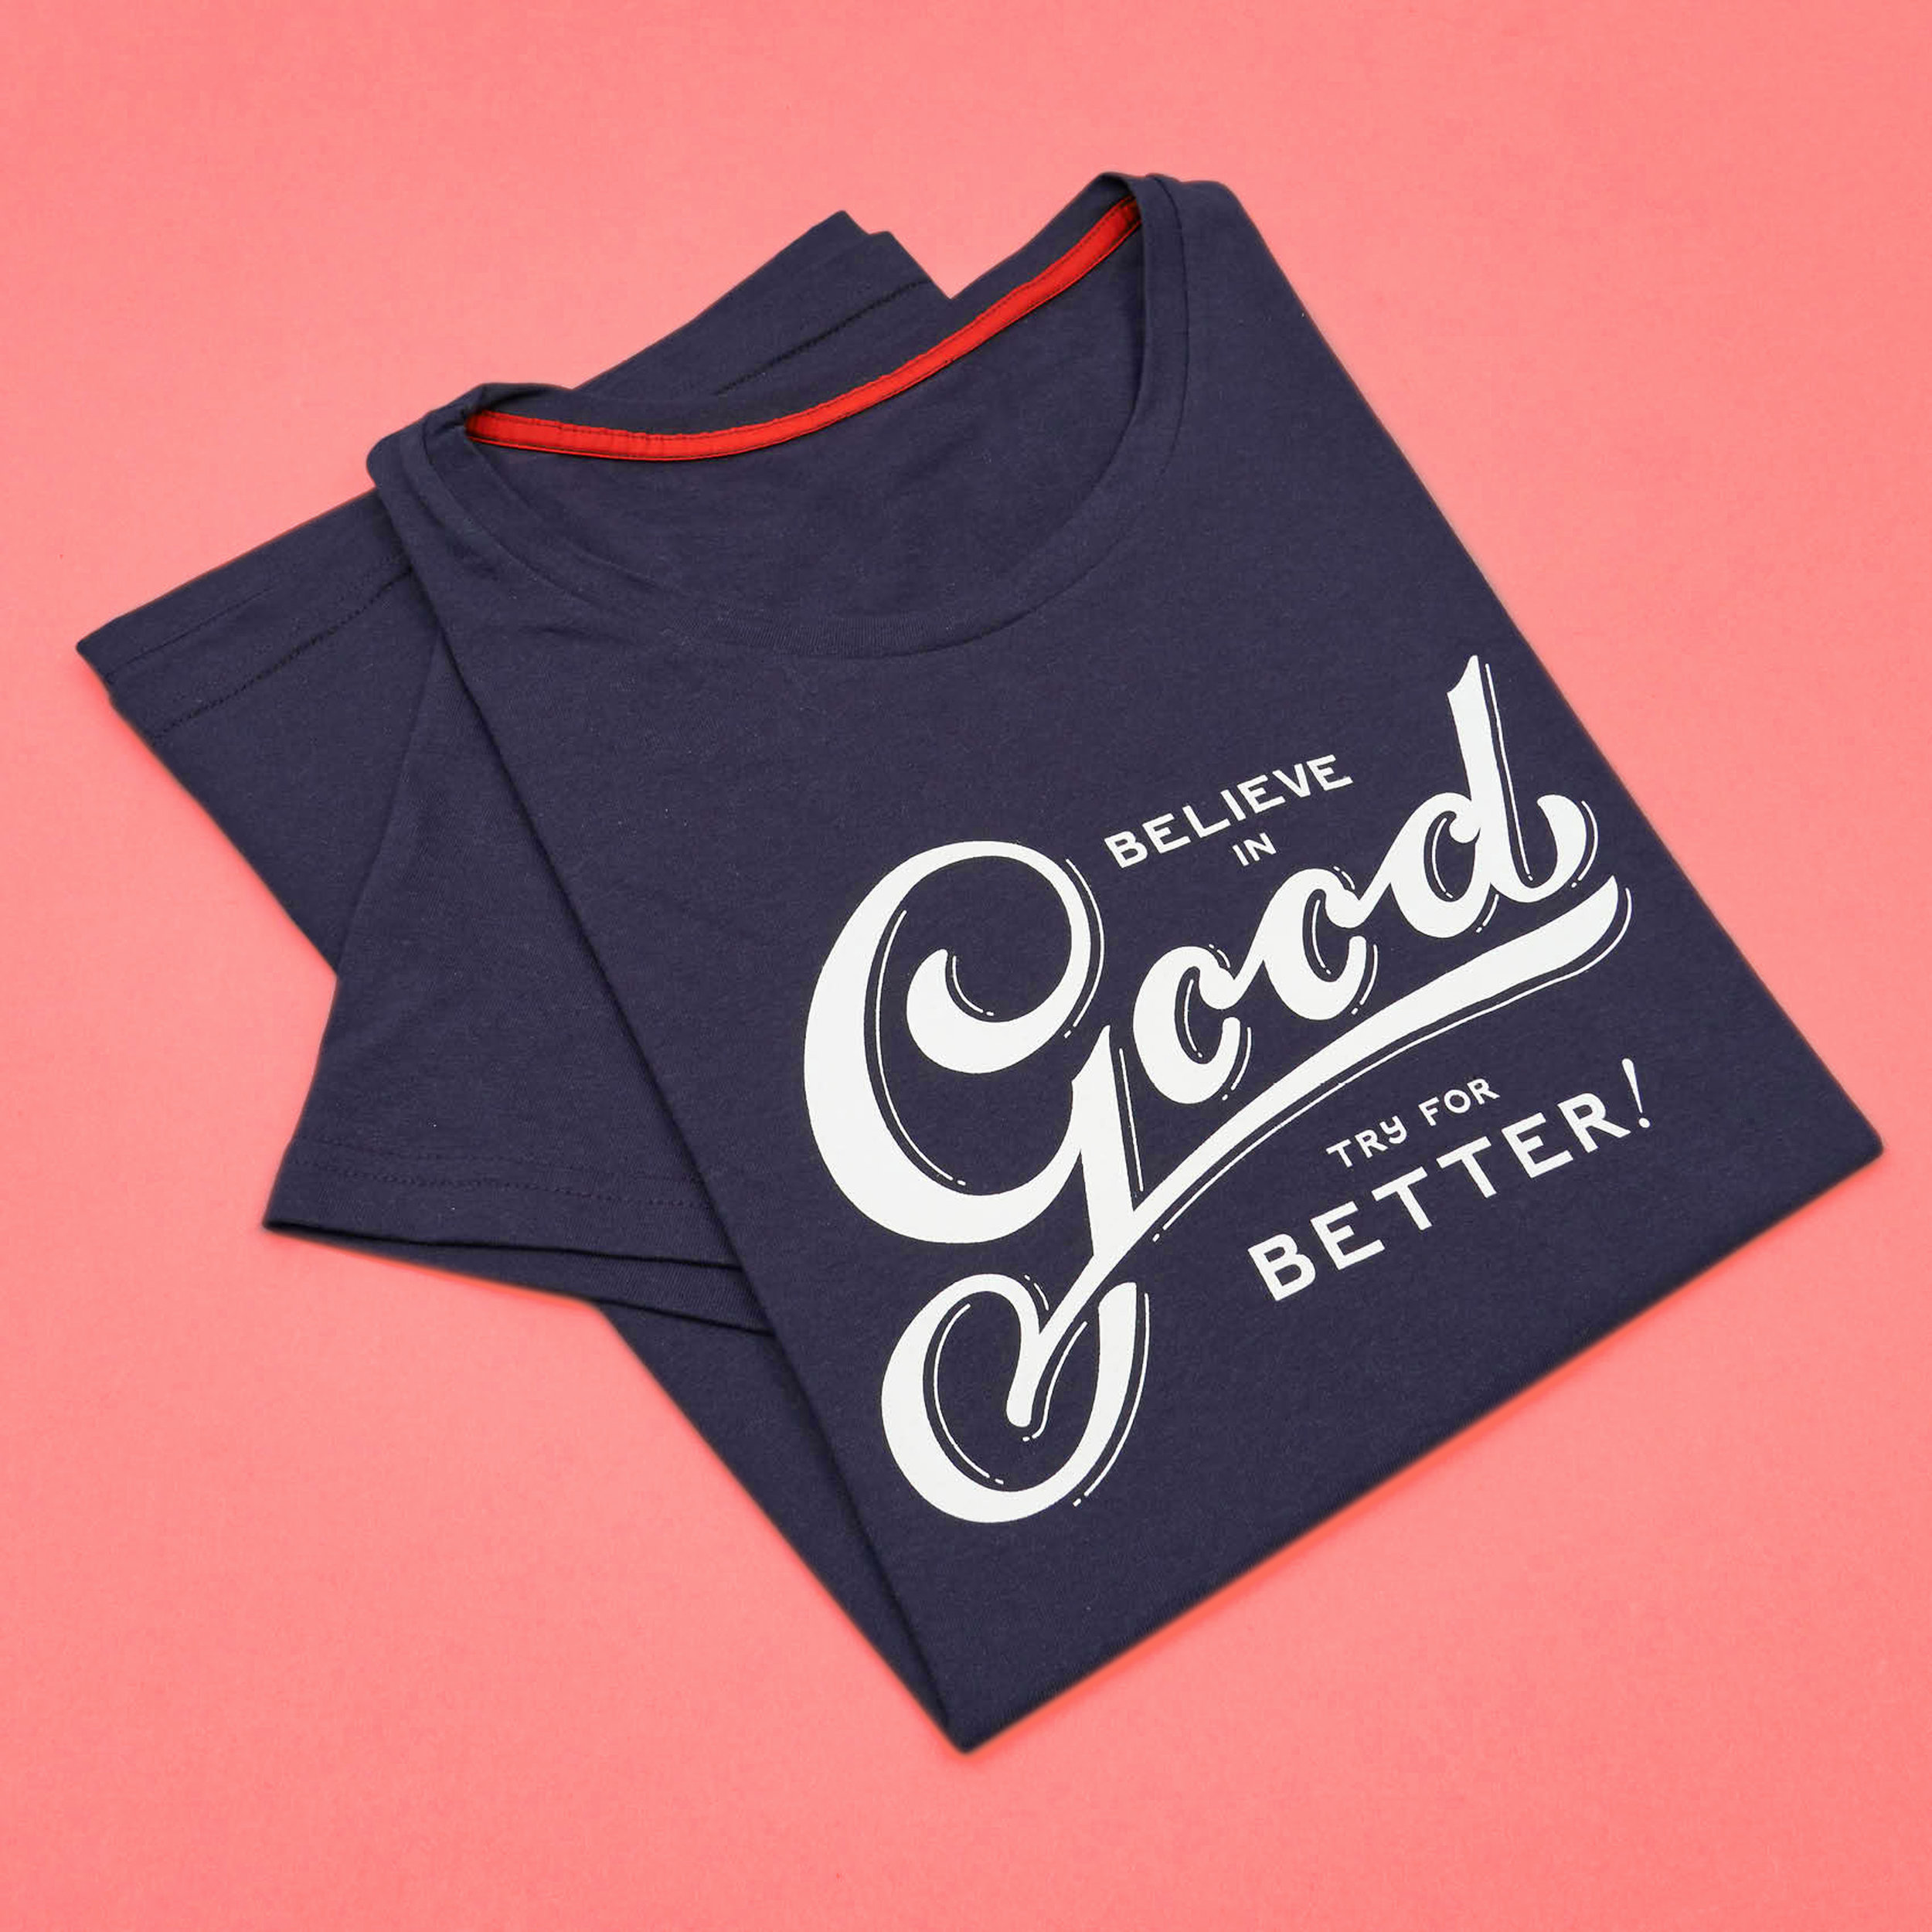 BELIEVE IN GOOD TRY FOR BETTER